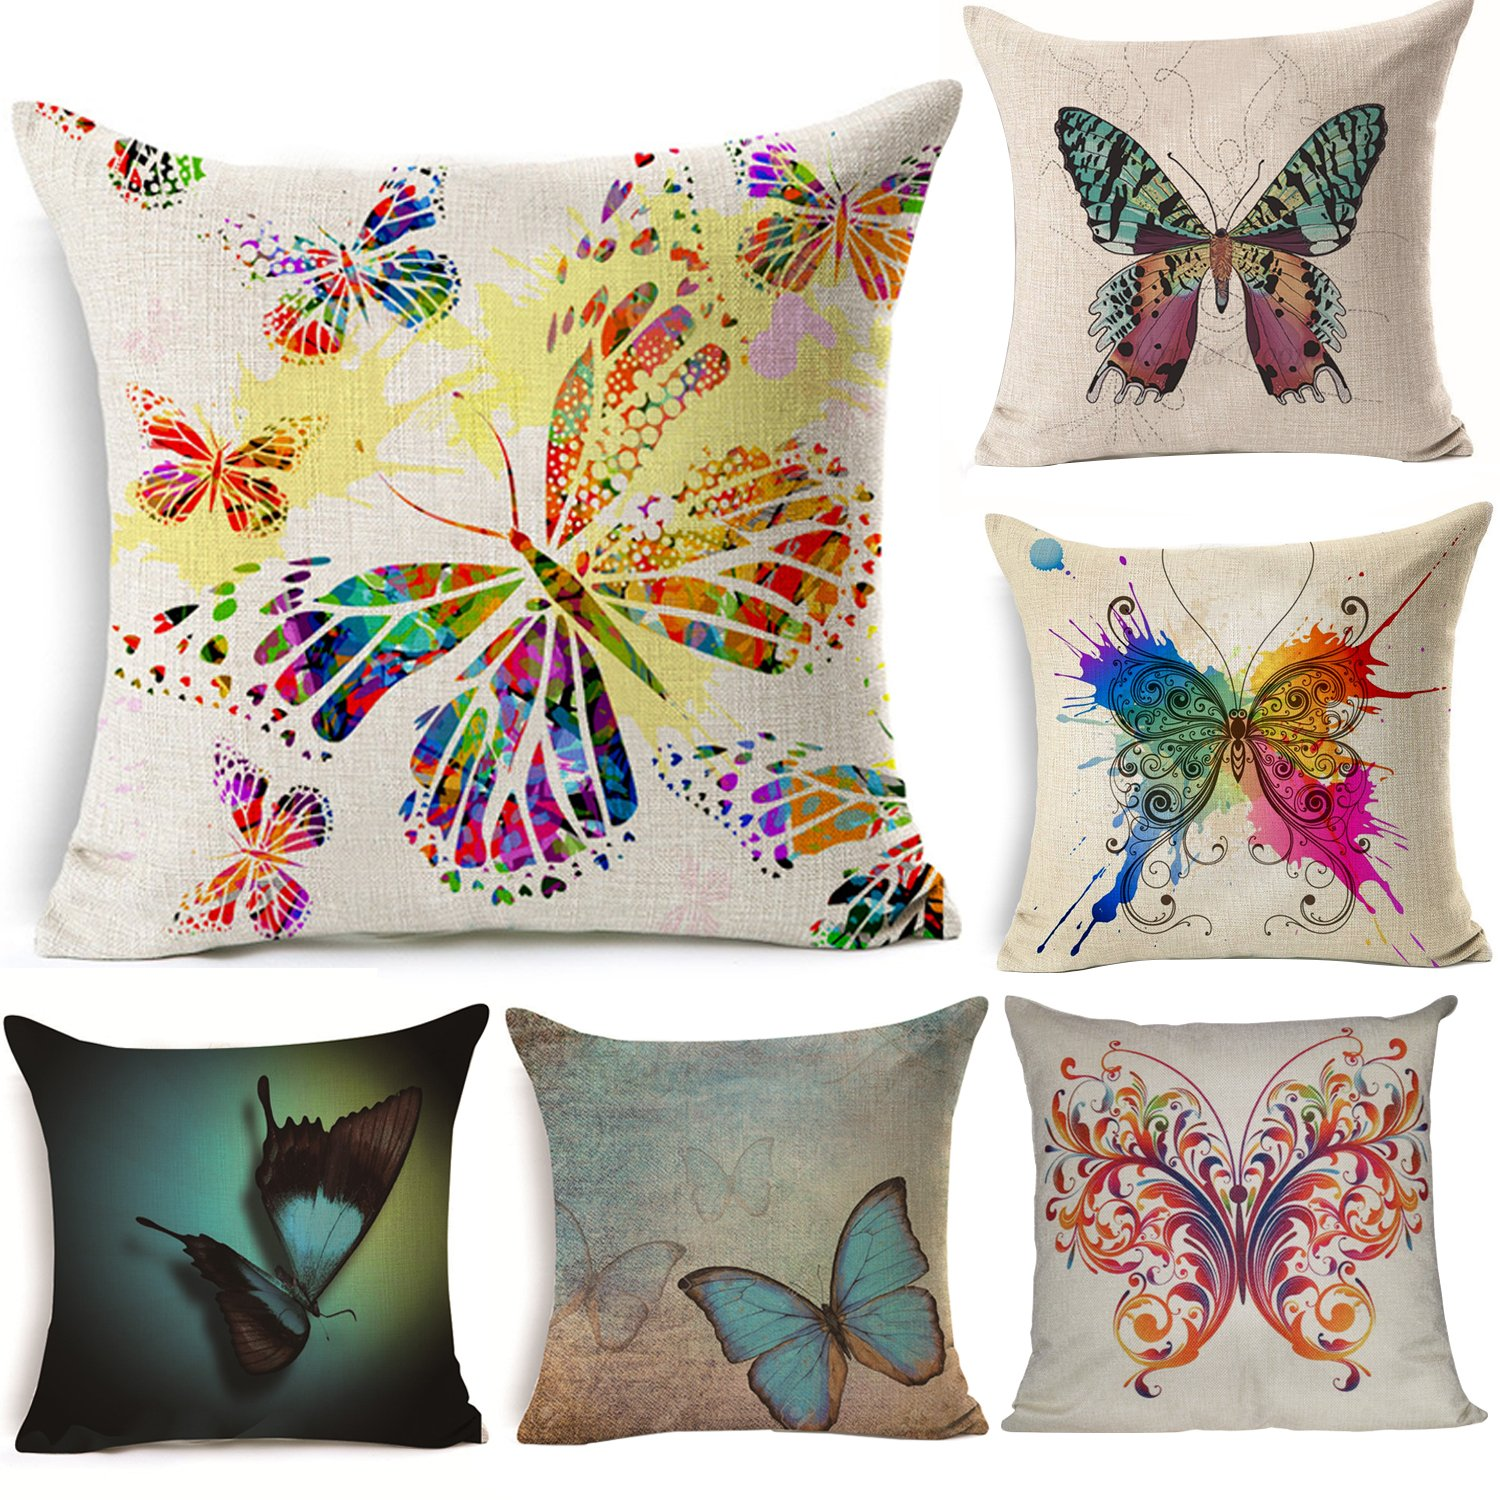 Colorful Butterfly Throw Pillow Case Cotton Linen Cushion Cover Home Decorative Pillow Cover 18 X 18 Inch 45 X 45cm 6 Pack Cover Only No Insert